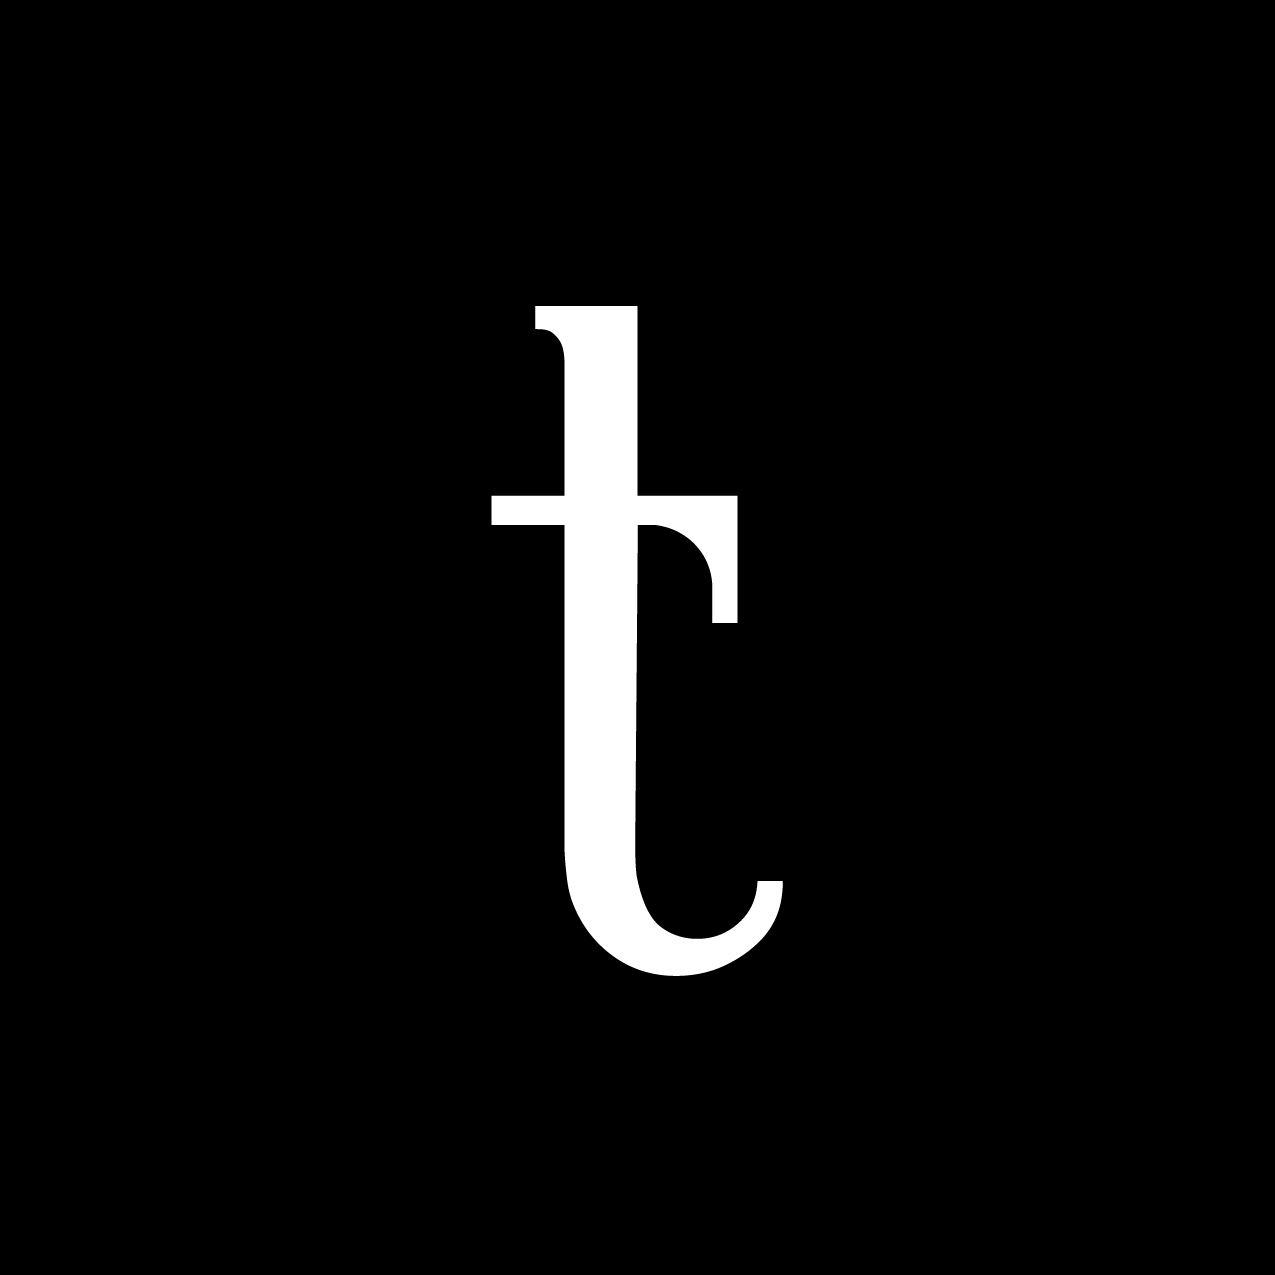 Letter T11 Design by Furia